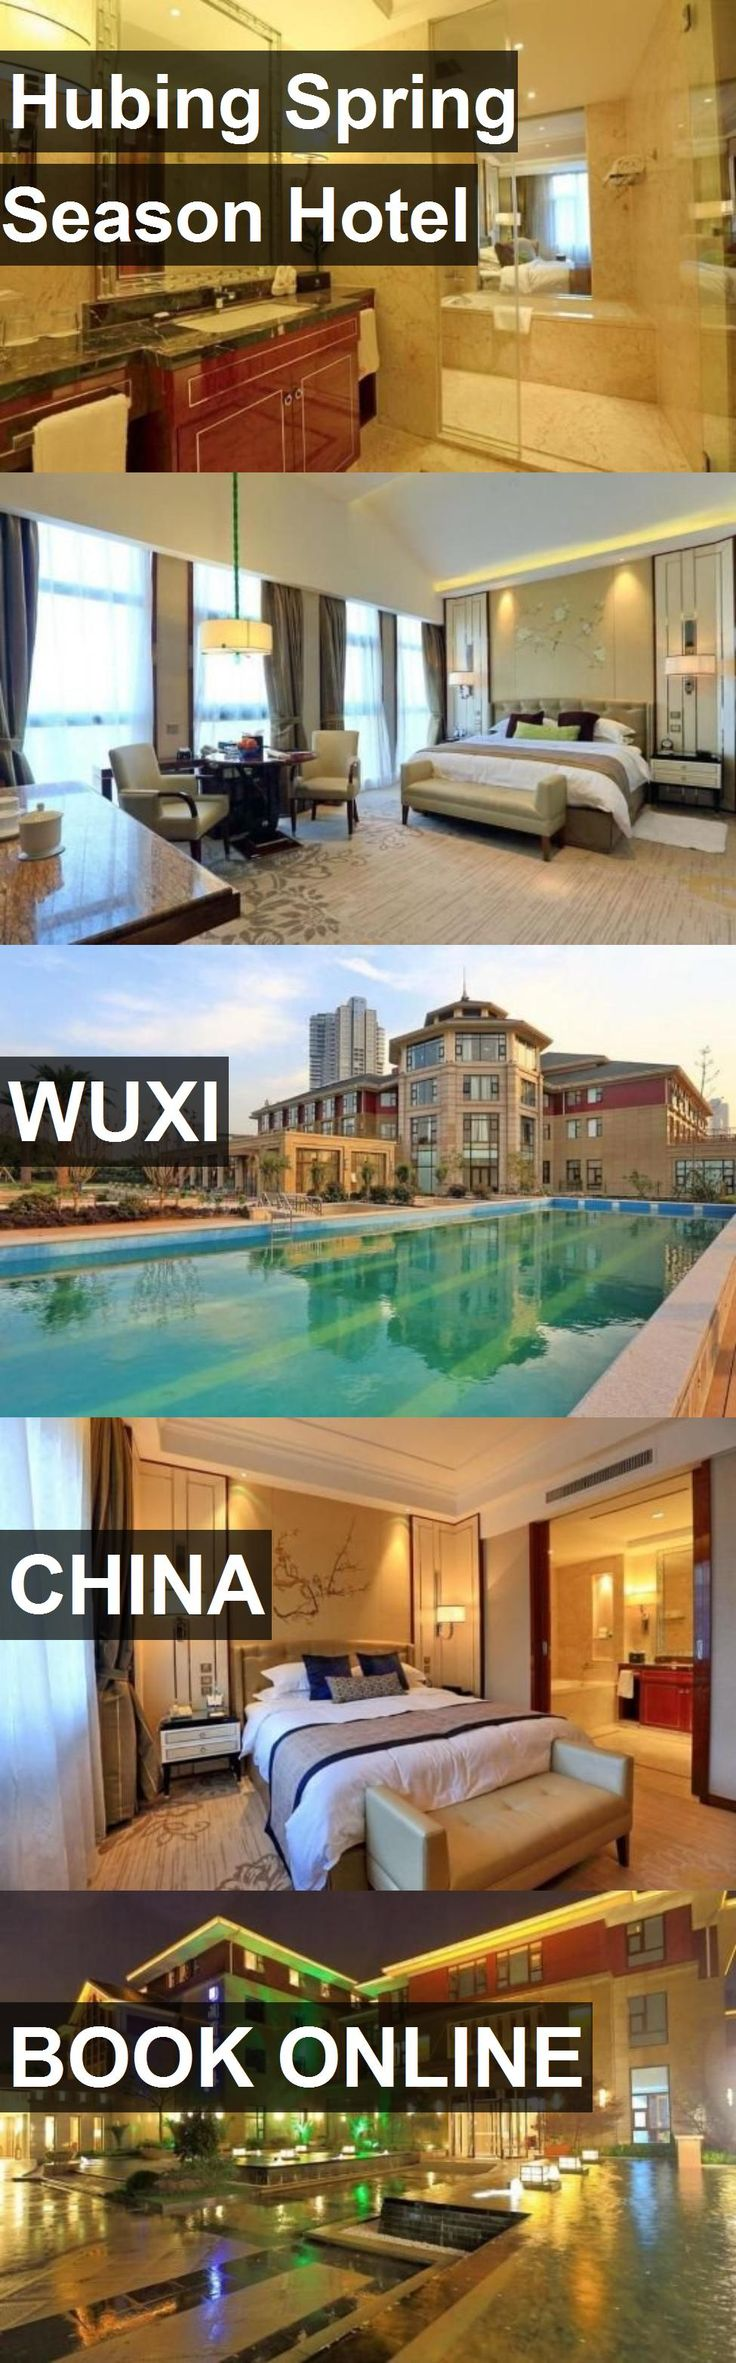 Hubing Spring Season Hotel in Wuxi, China. For more information, photos, reviews and best prices please follow the link. #China #Wuxi #travel #vacation #hotel